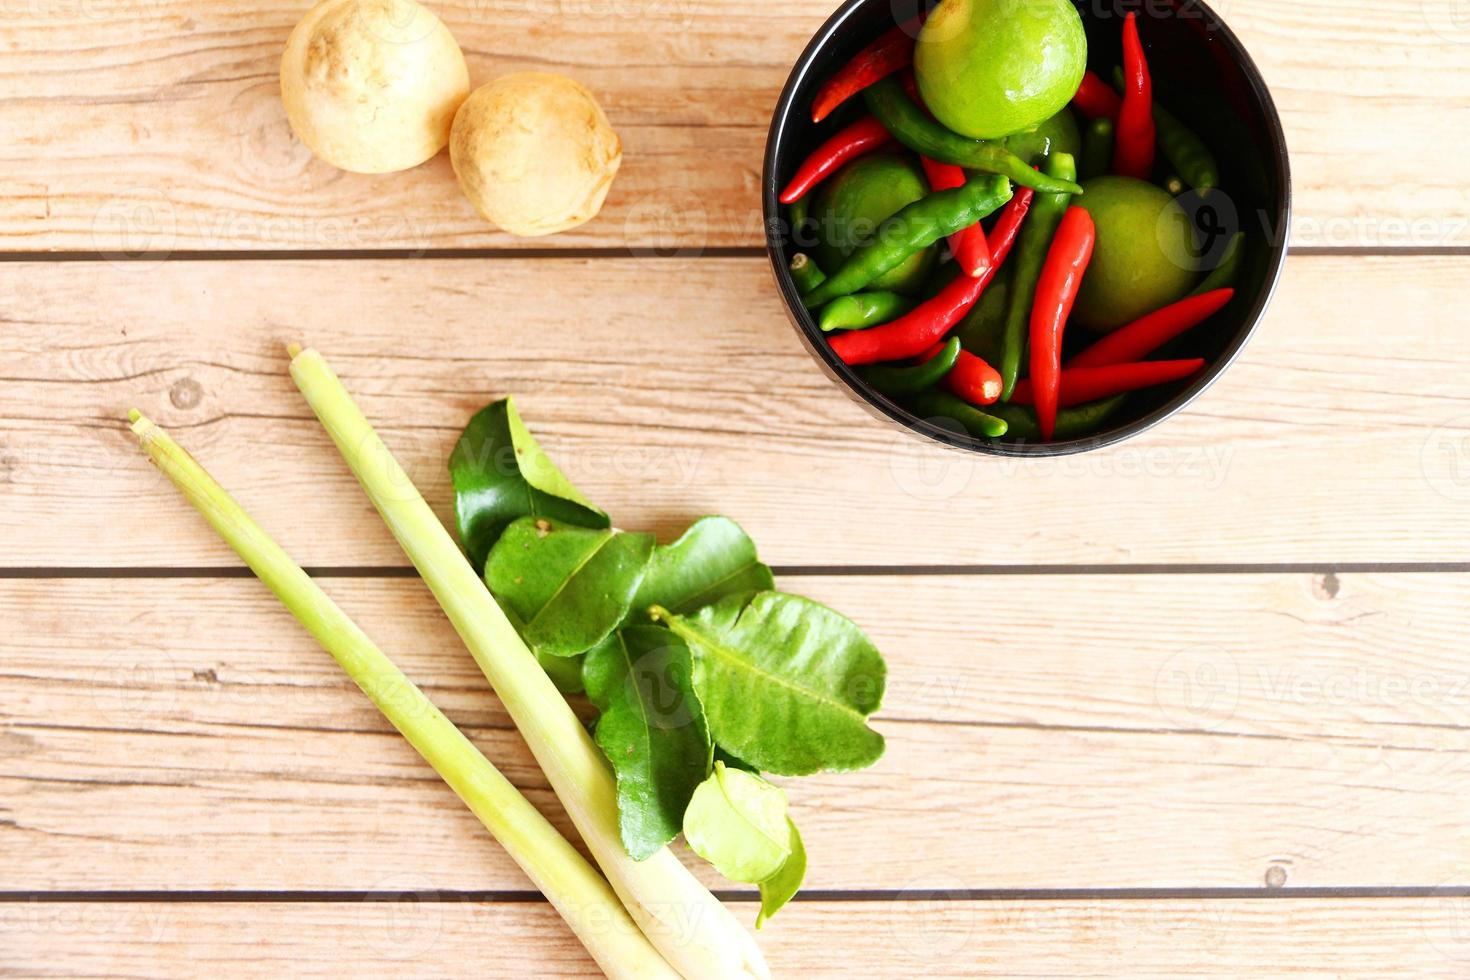 Thai Tom Yam soup herbs and spices photo